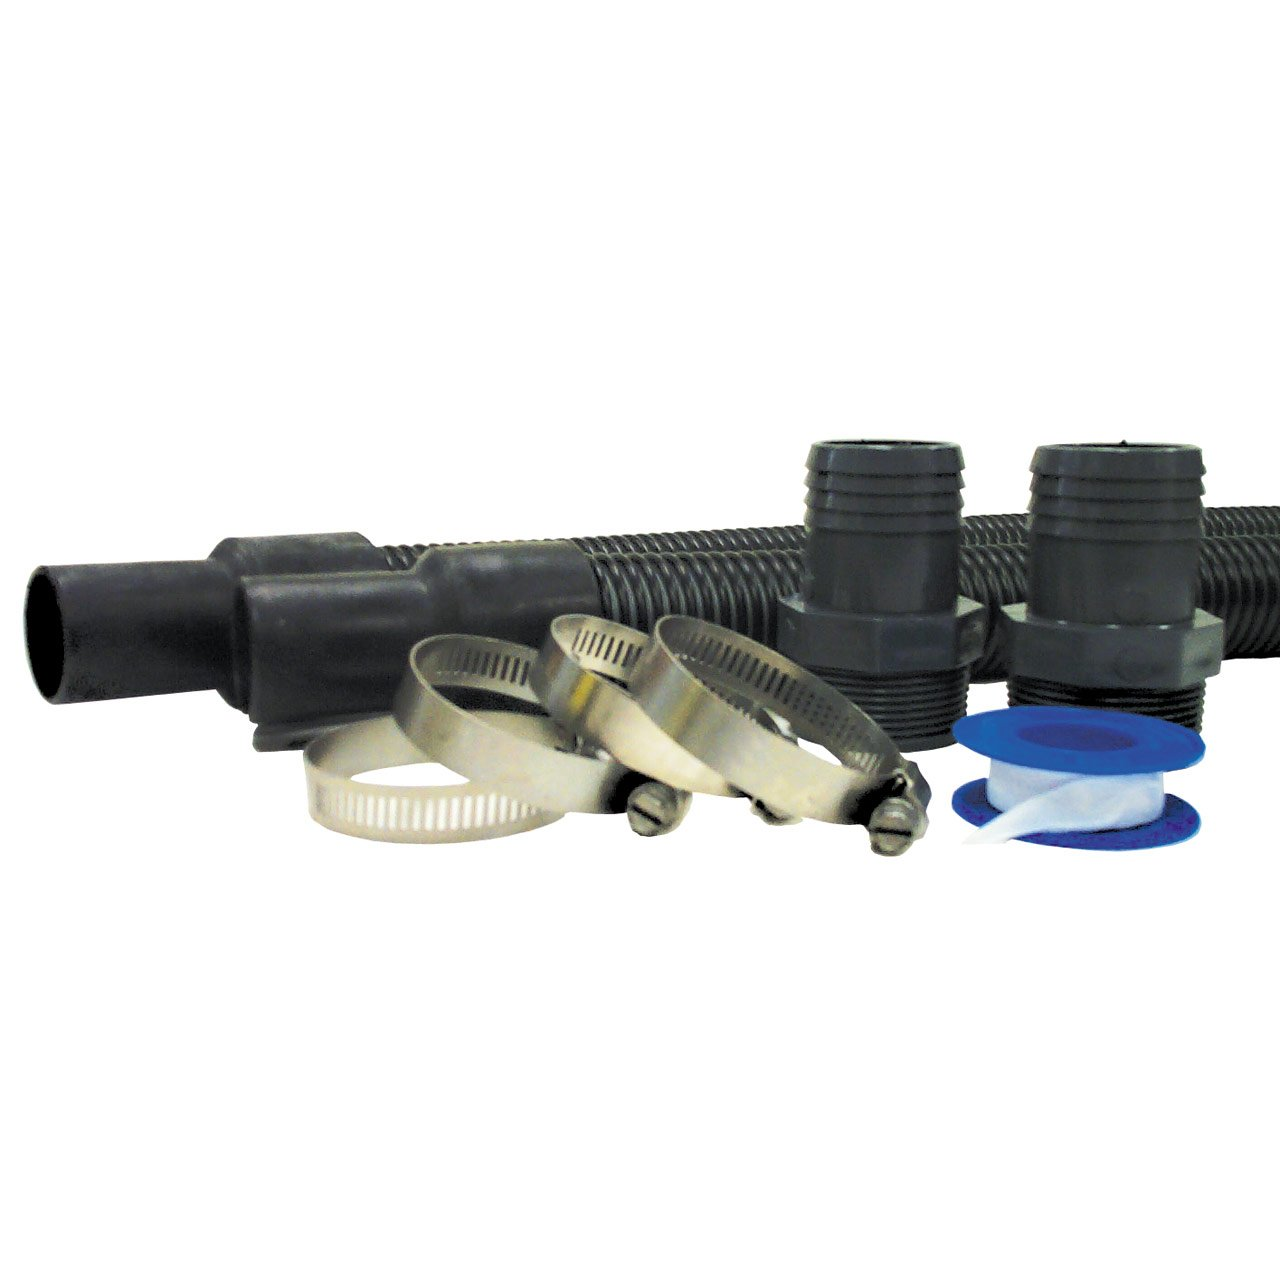 Hayward EC1155 1-1/2-Inch Suction and Discharge Hose Package by Hayward